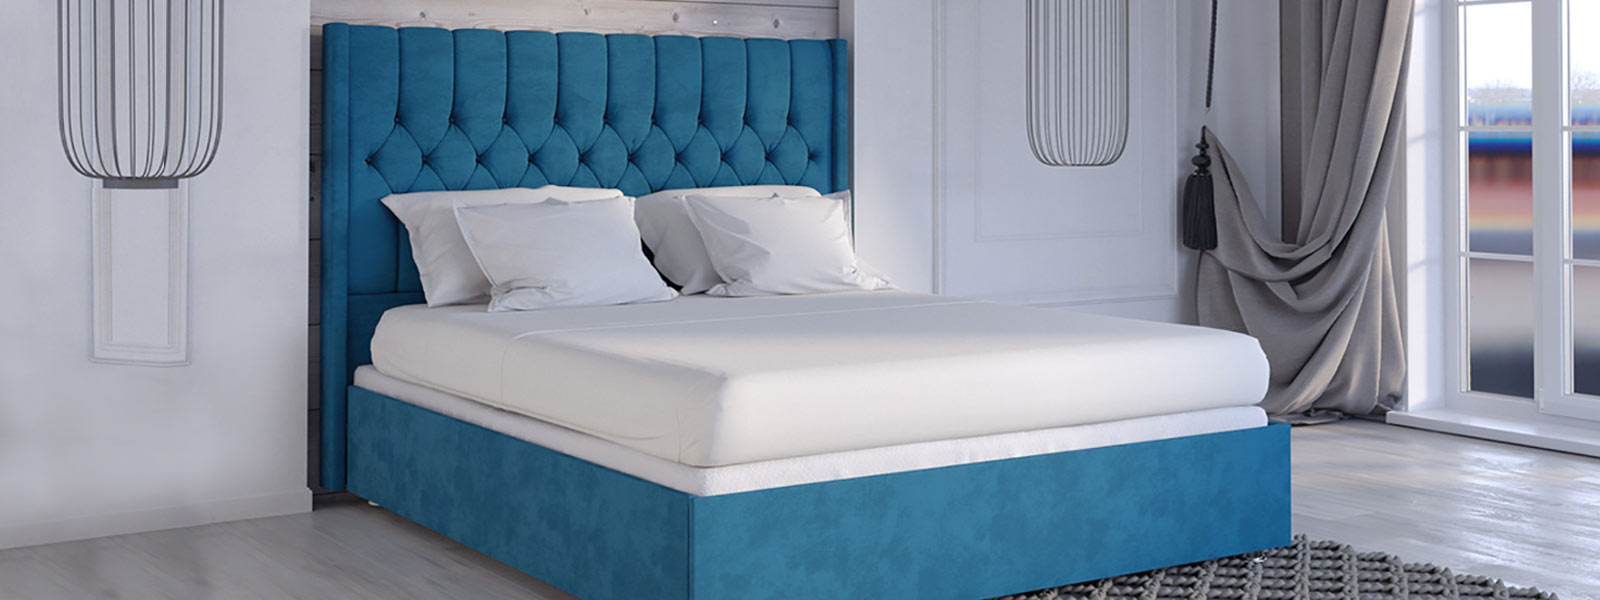 Bedroom set and mattress from Canada Sleep Paradise